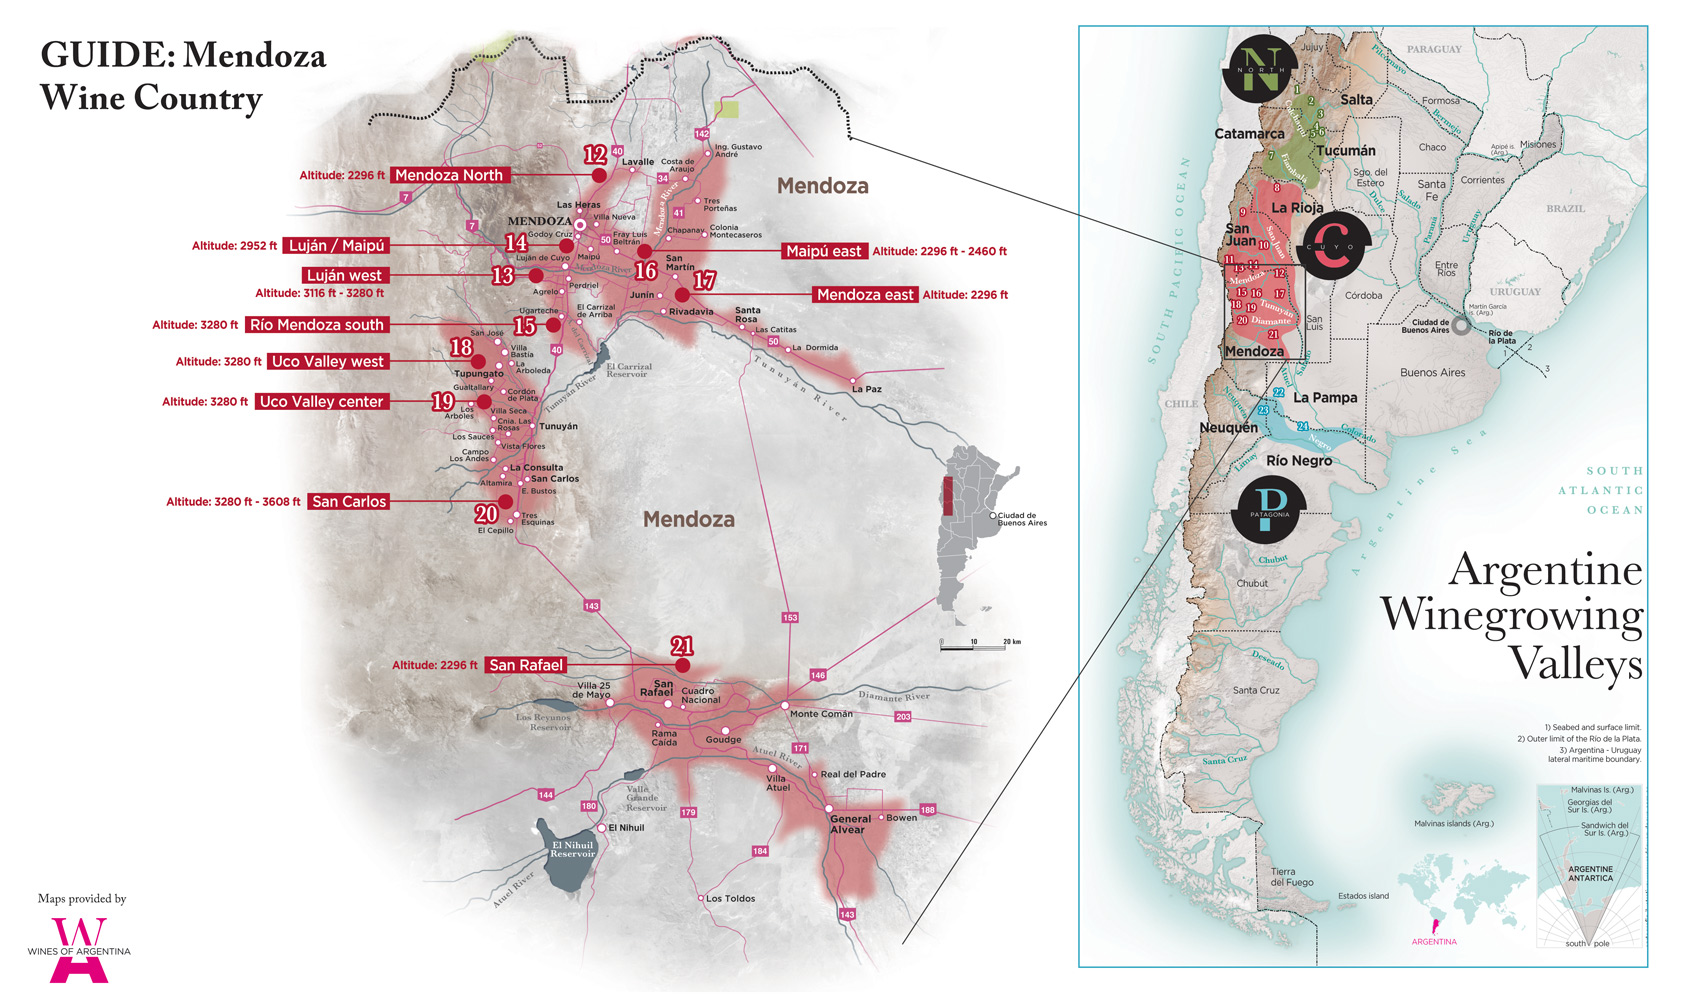 Argentina-Wine-Country-Guide map